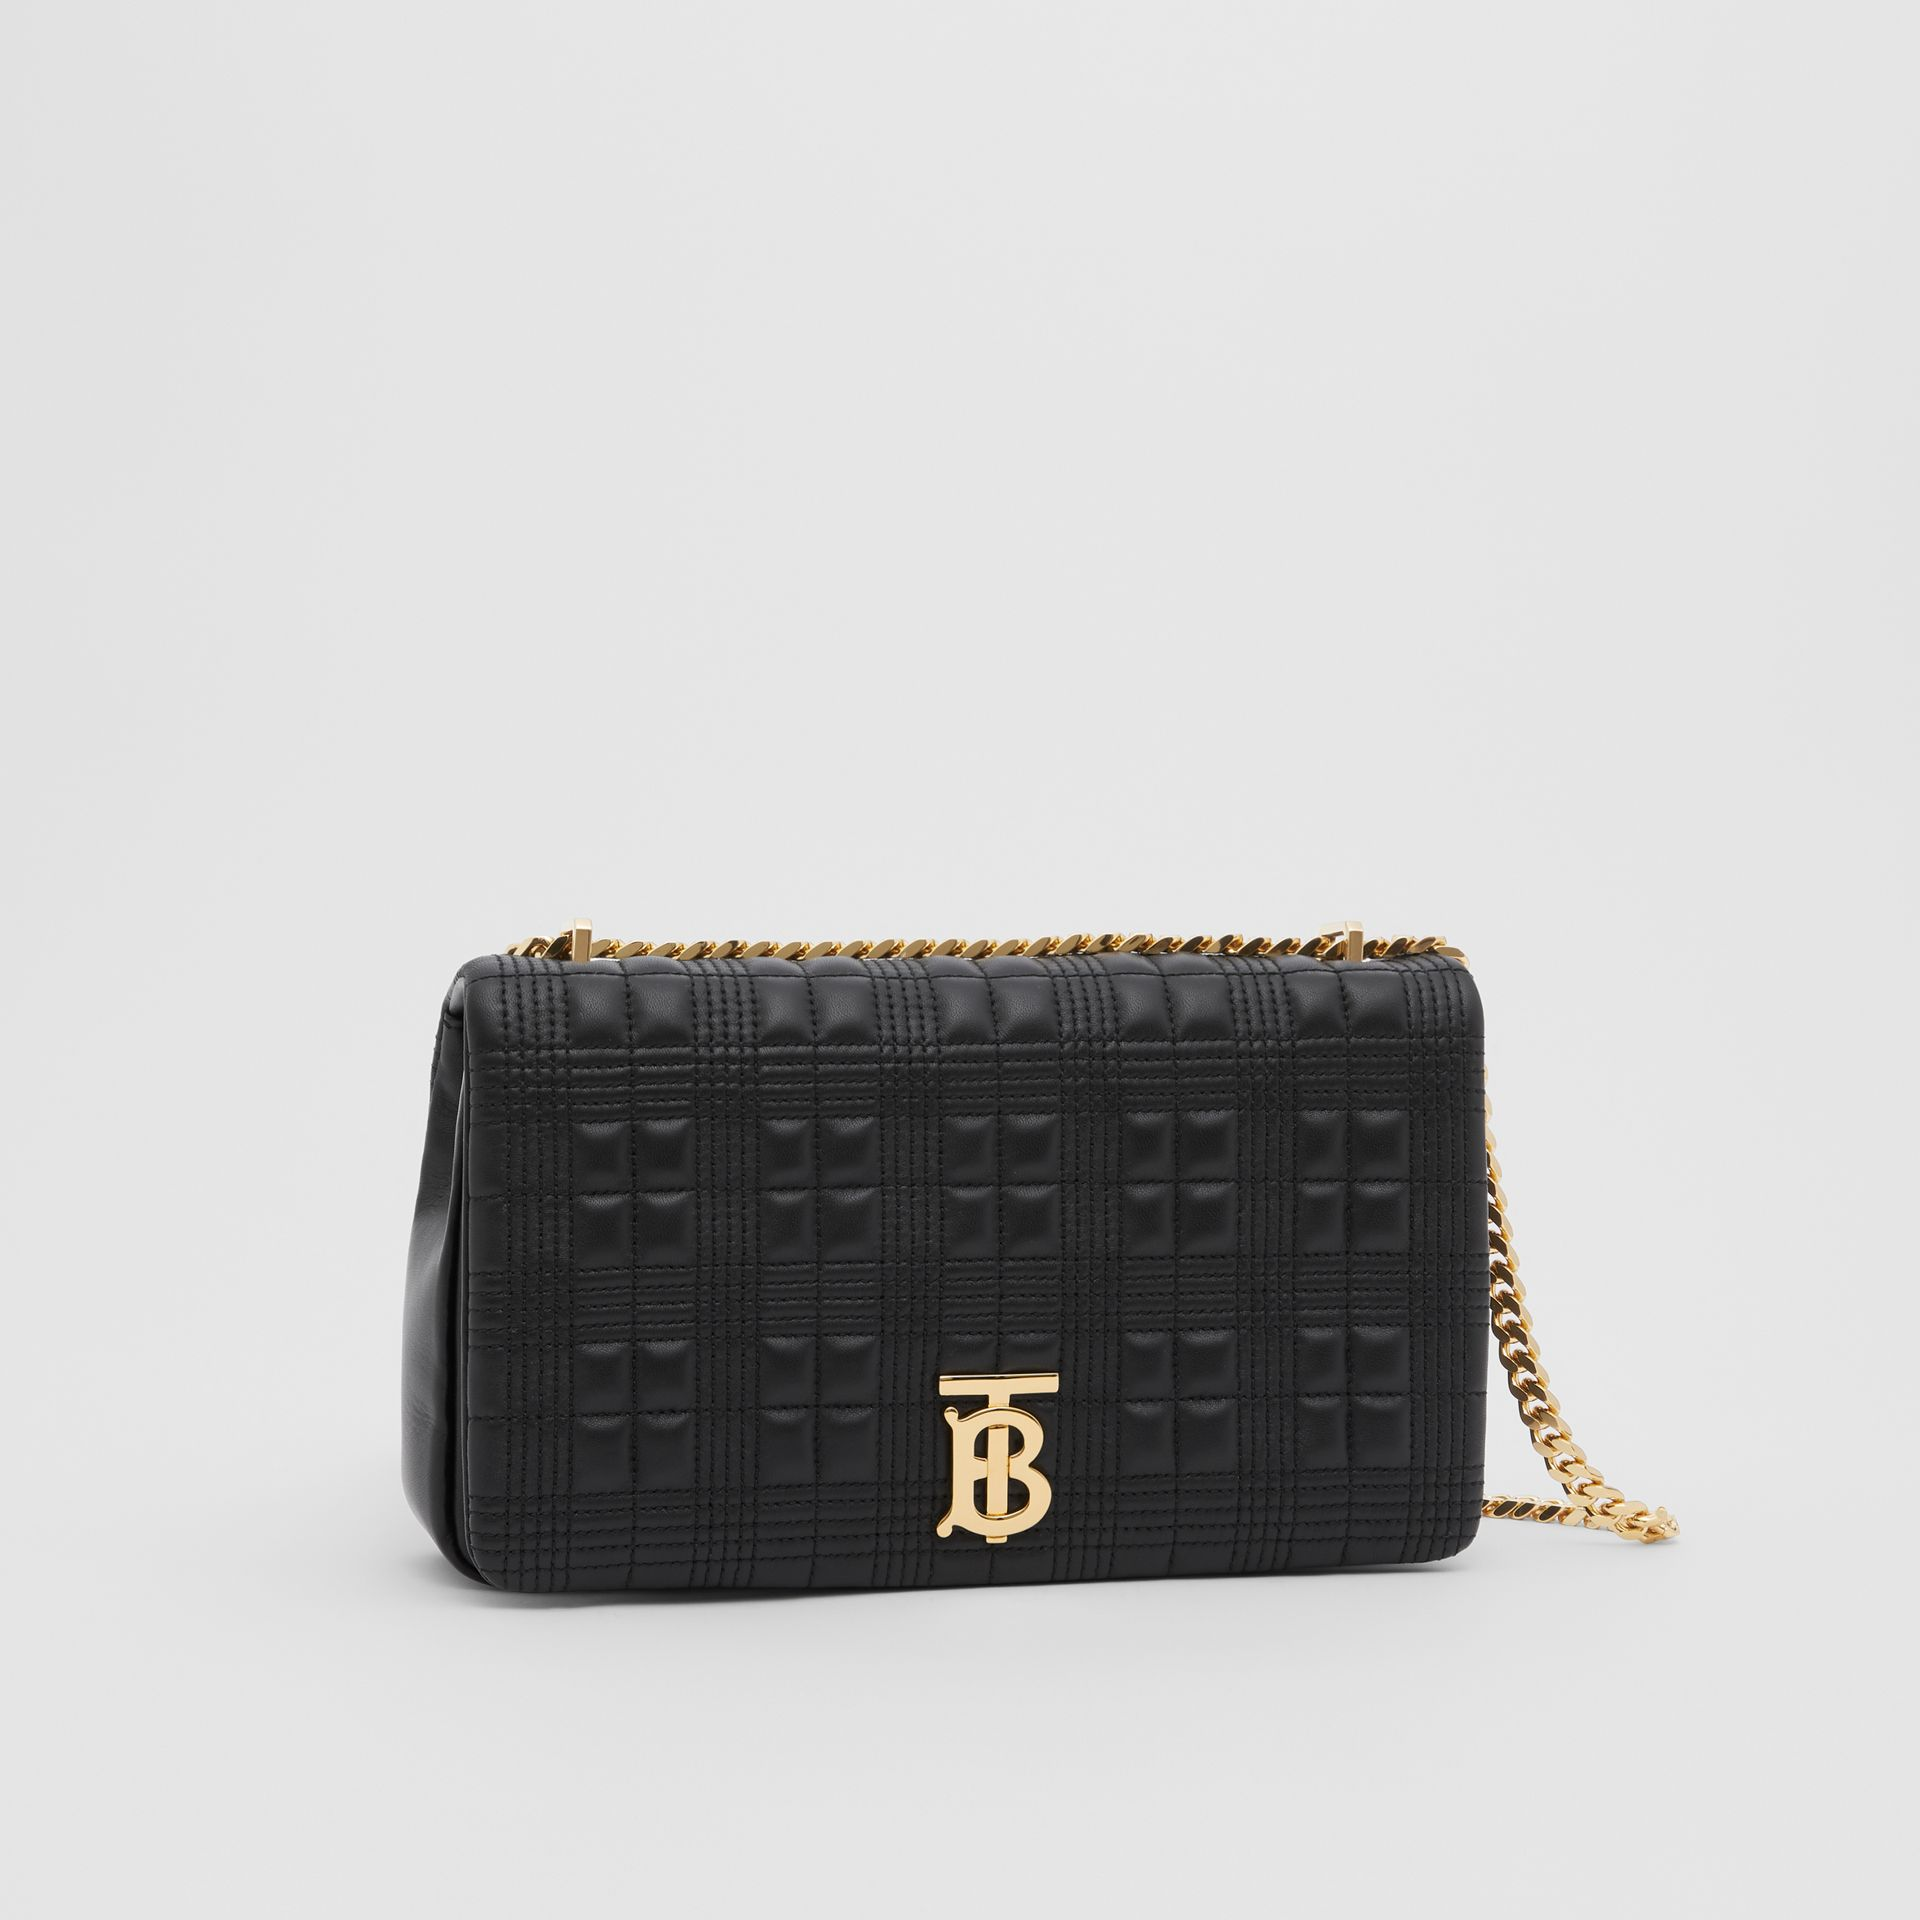 Medium Quilted Lambskin Lola Bag in Black/light Gold - Women | Burberry United States - gallery image 6